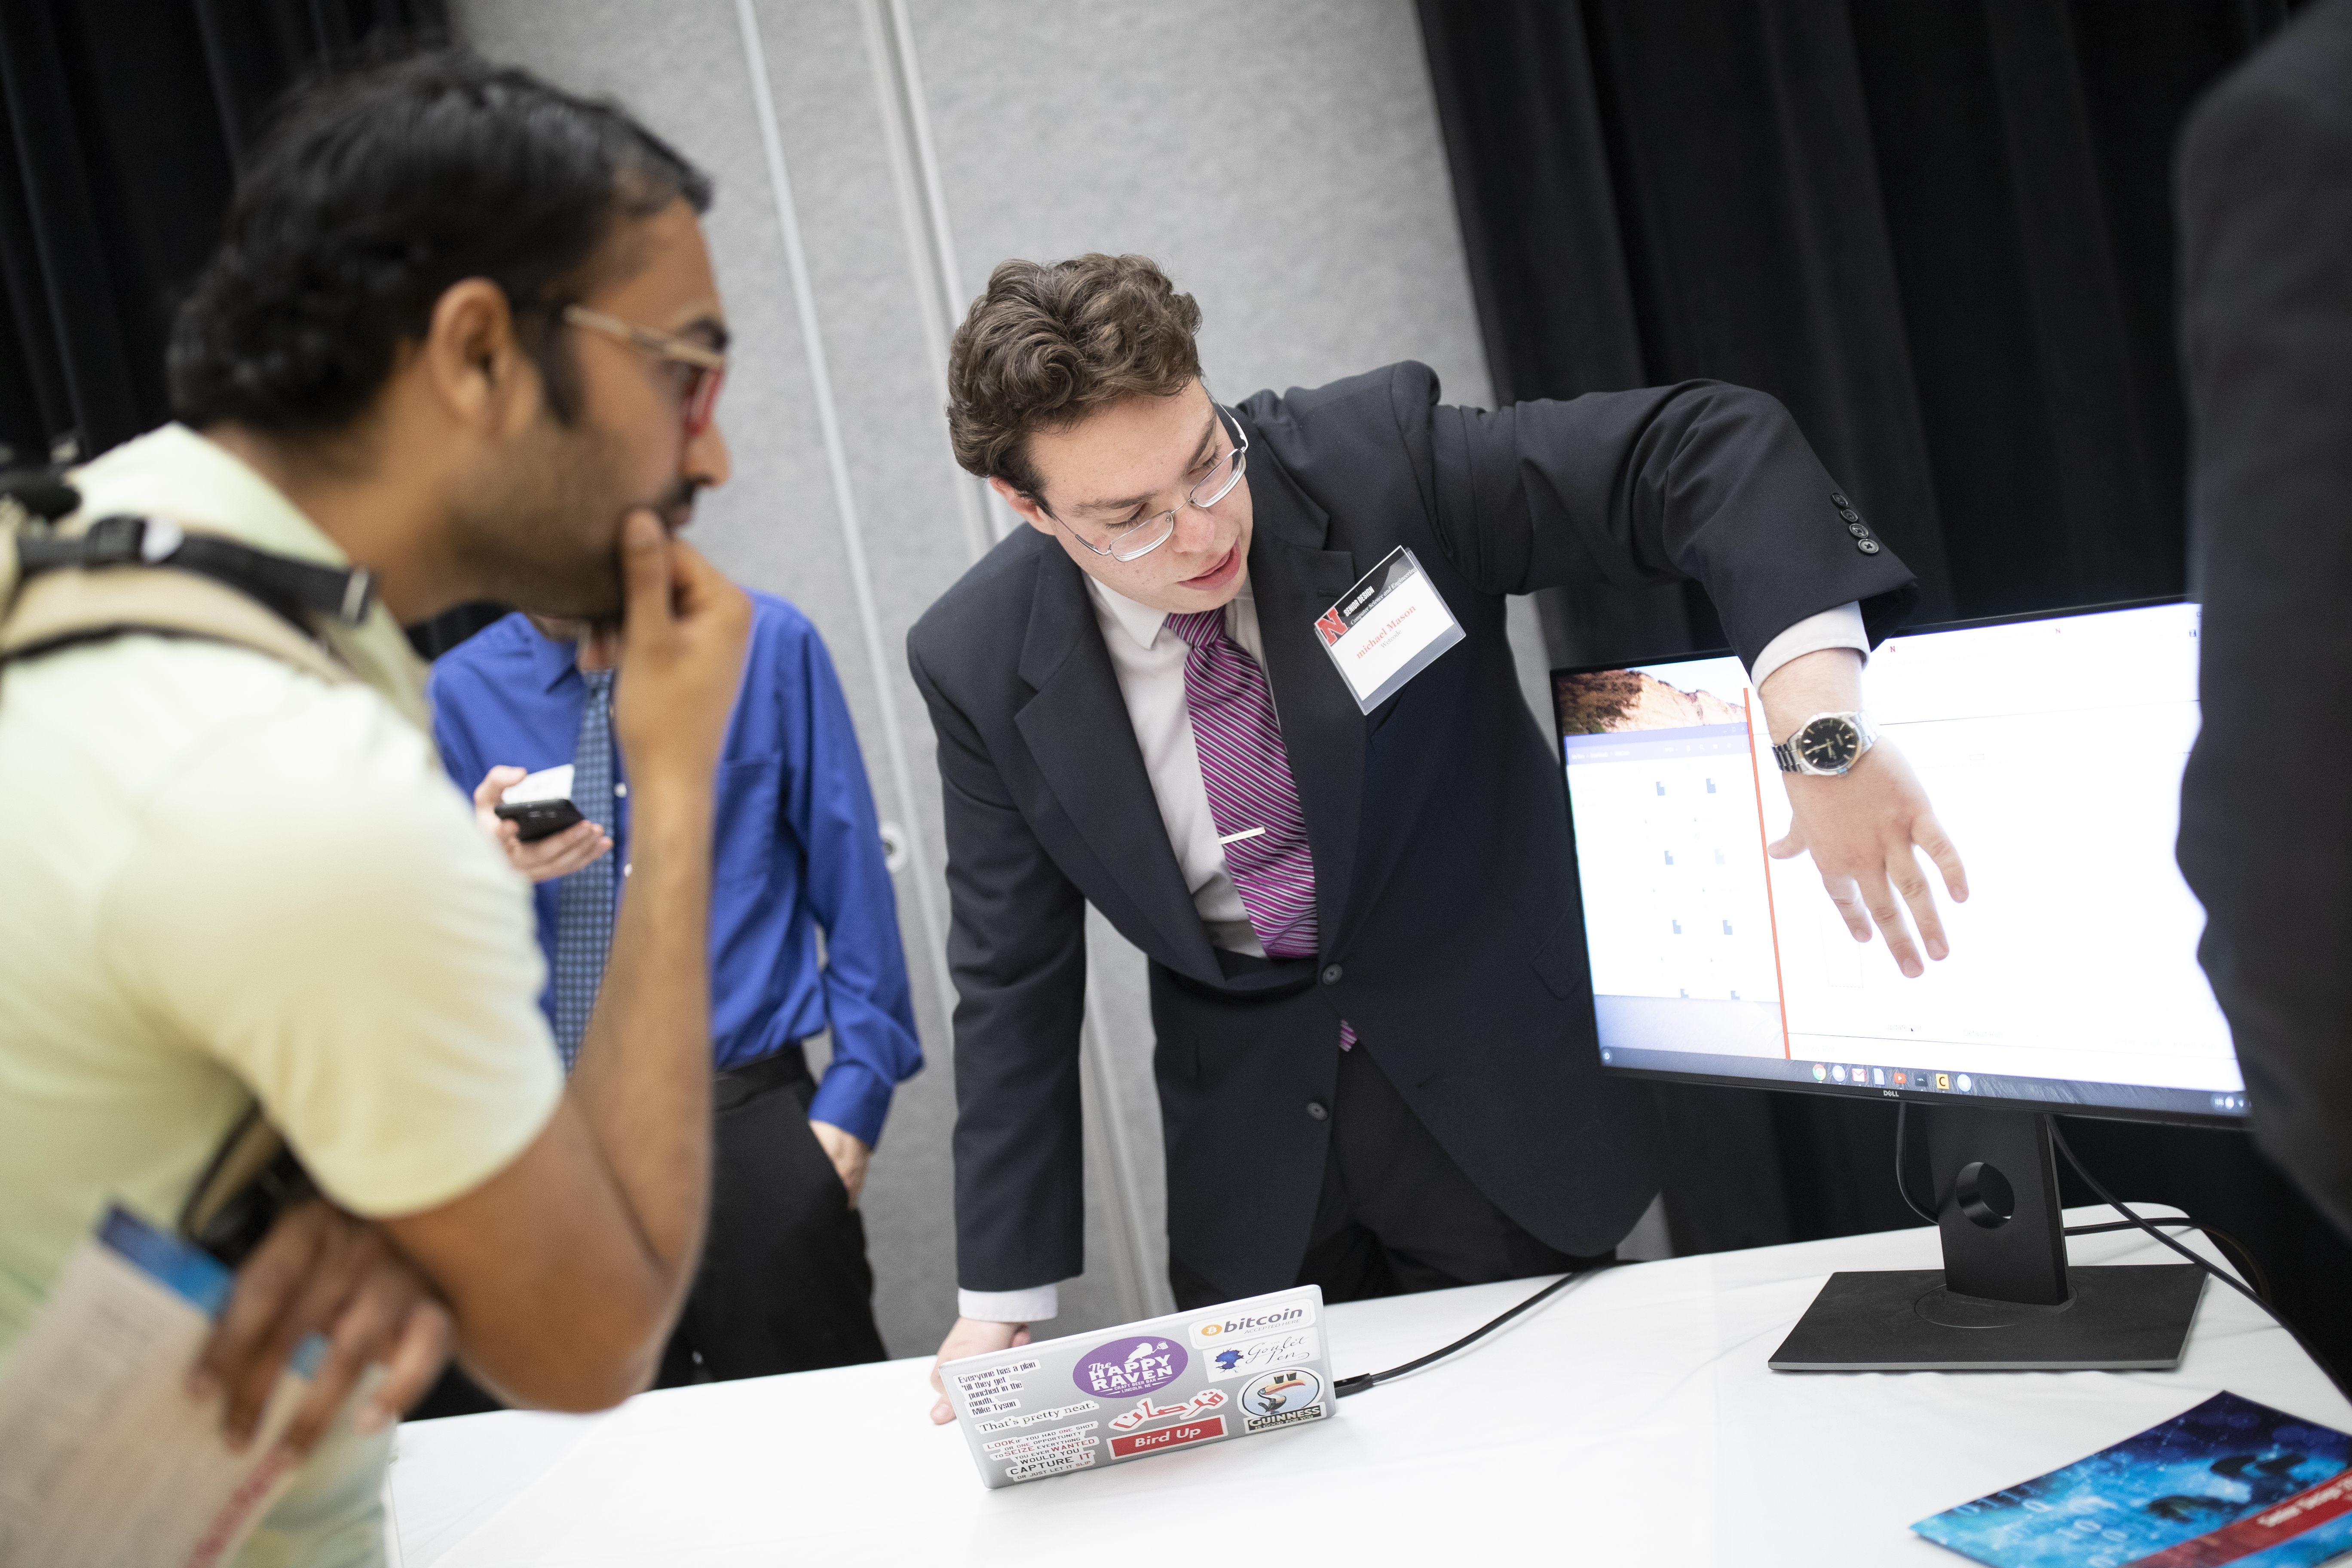 A student presents a project at the 2019 Senior Design Showcase.